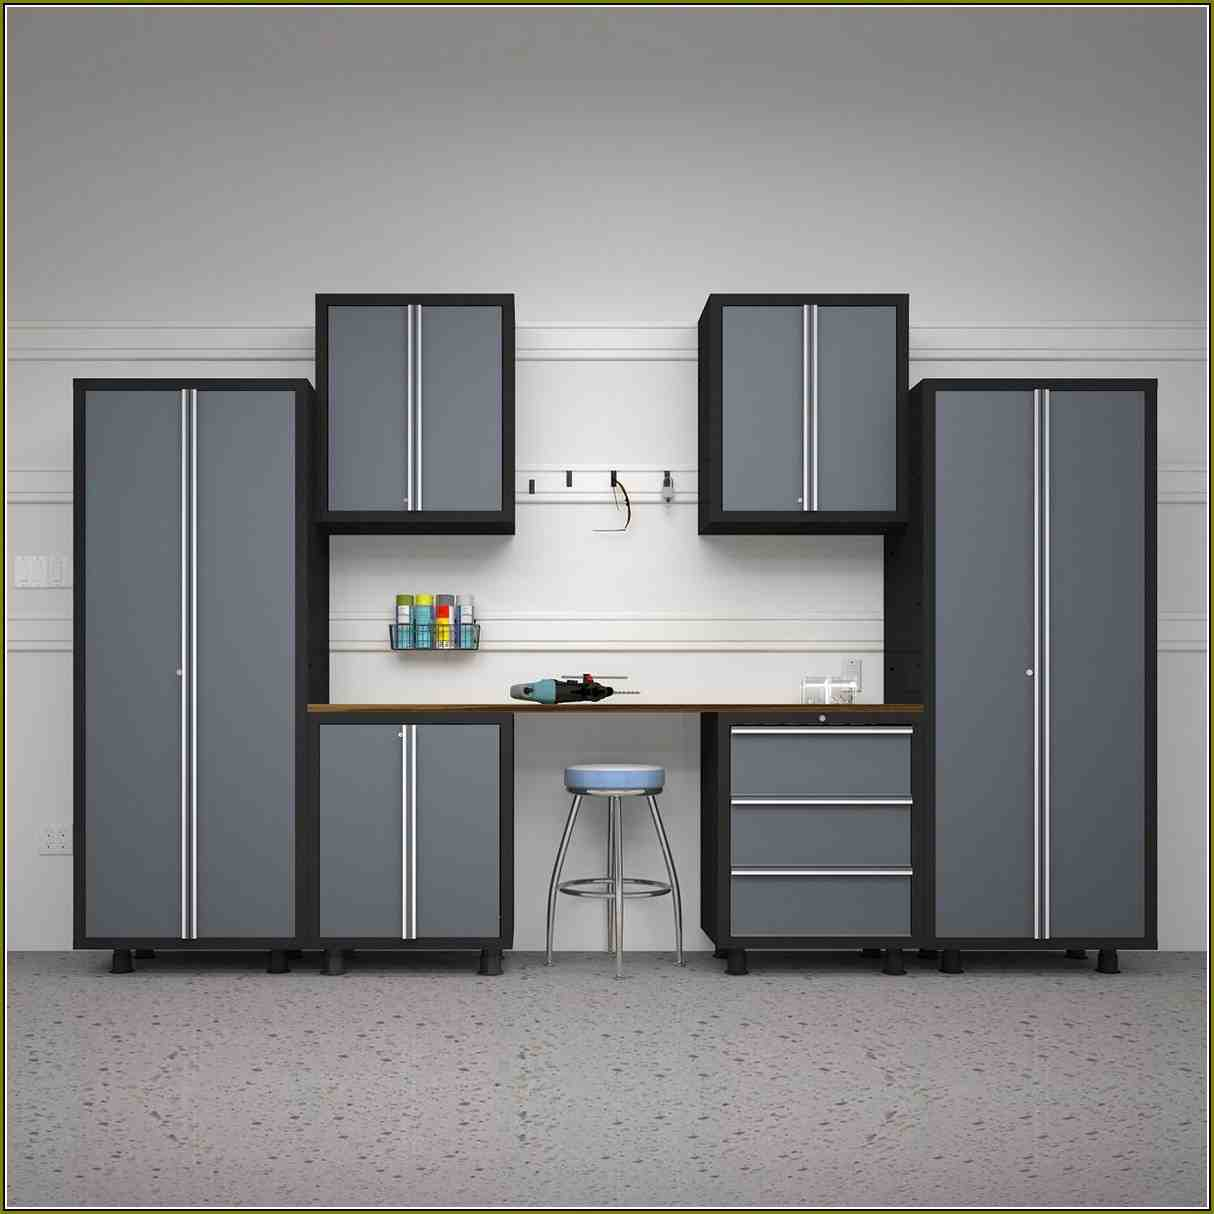 Shop Storage: Kobalt Garage Cabinets